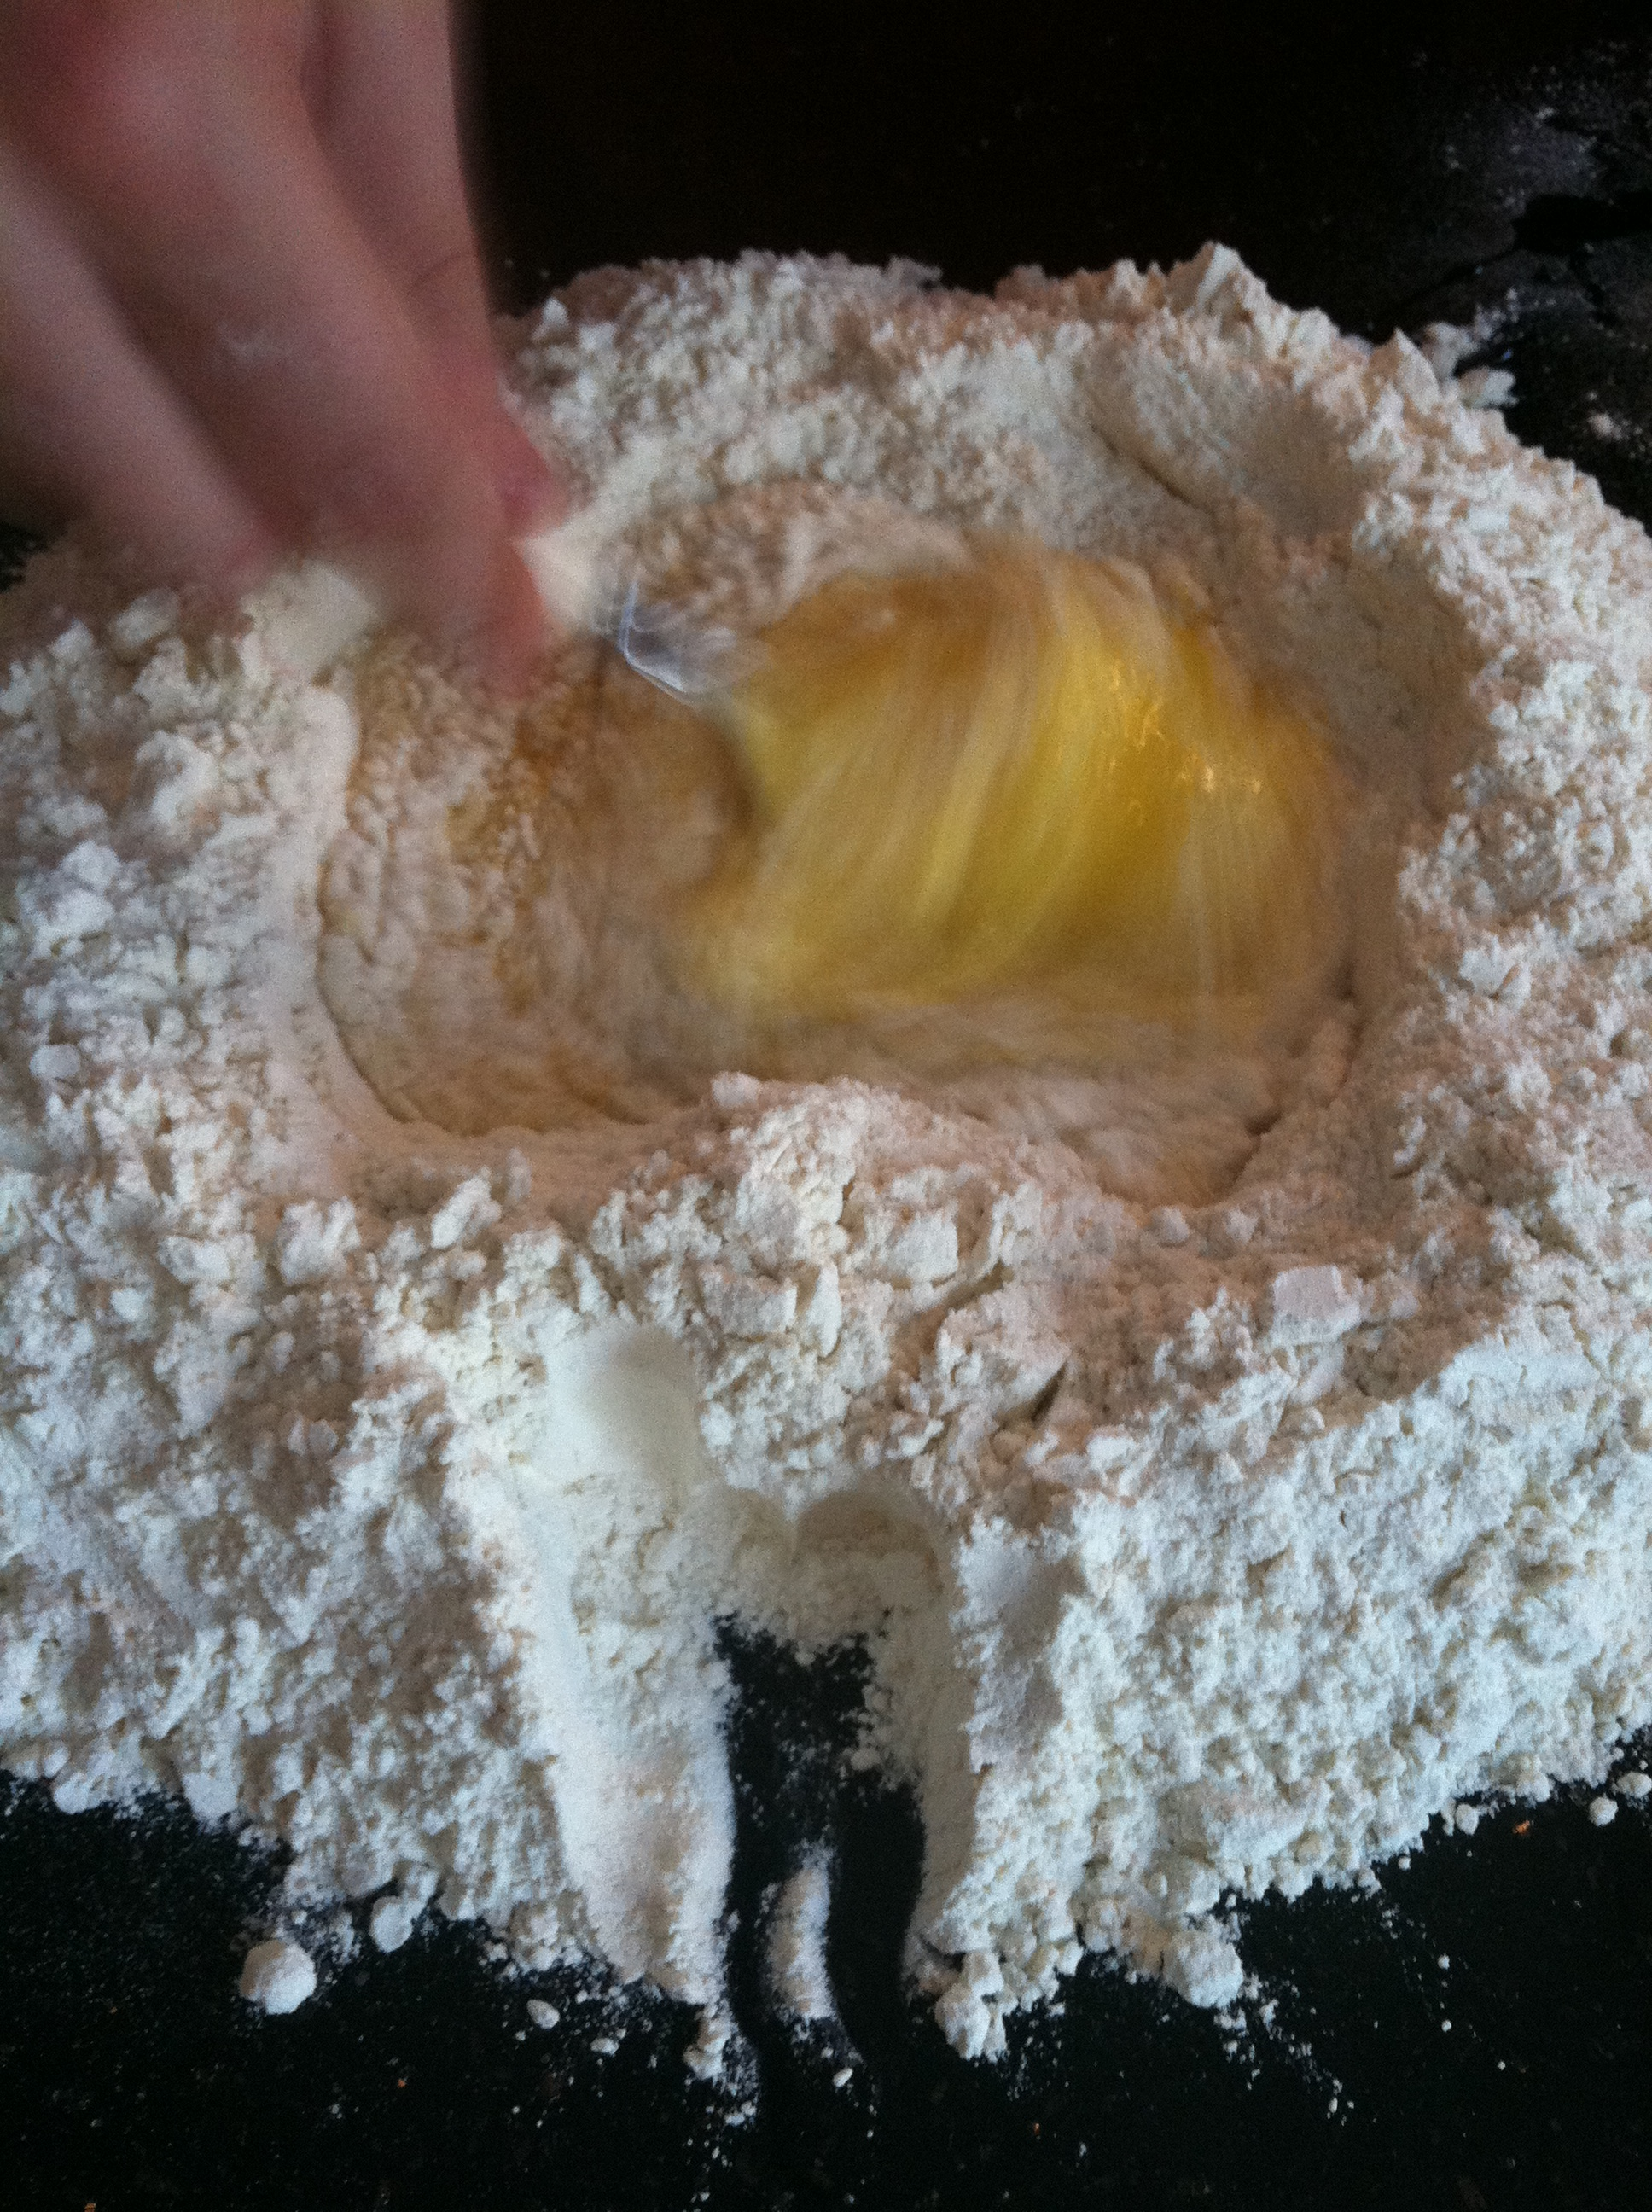 Cupcakes for Breakfast: making homemade pasta – mixing flour and eggs